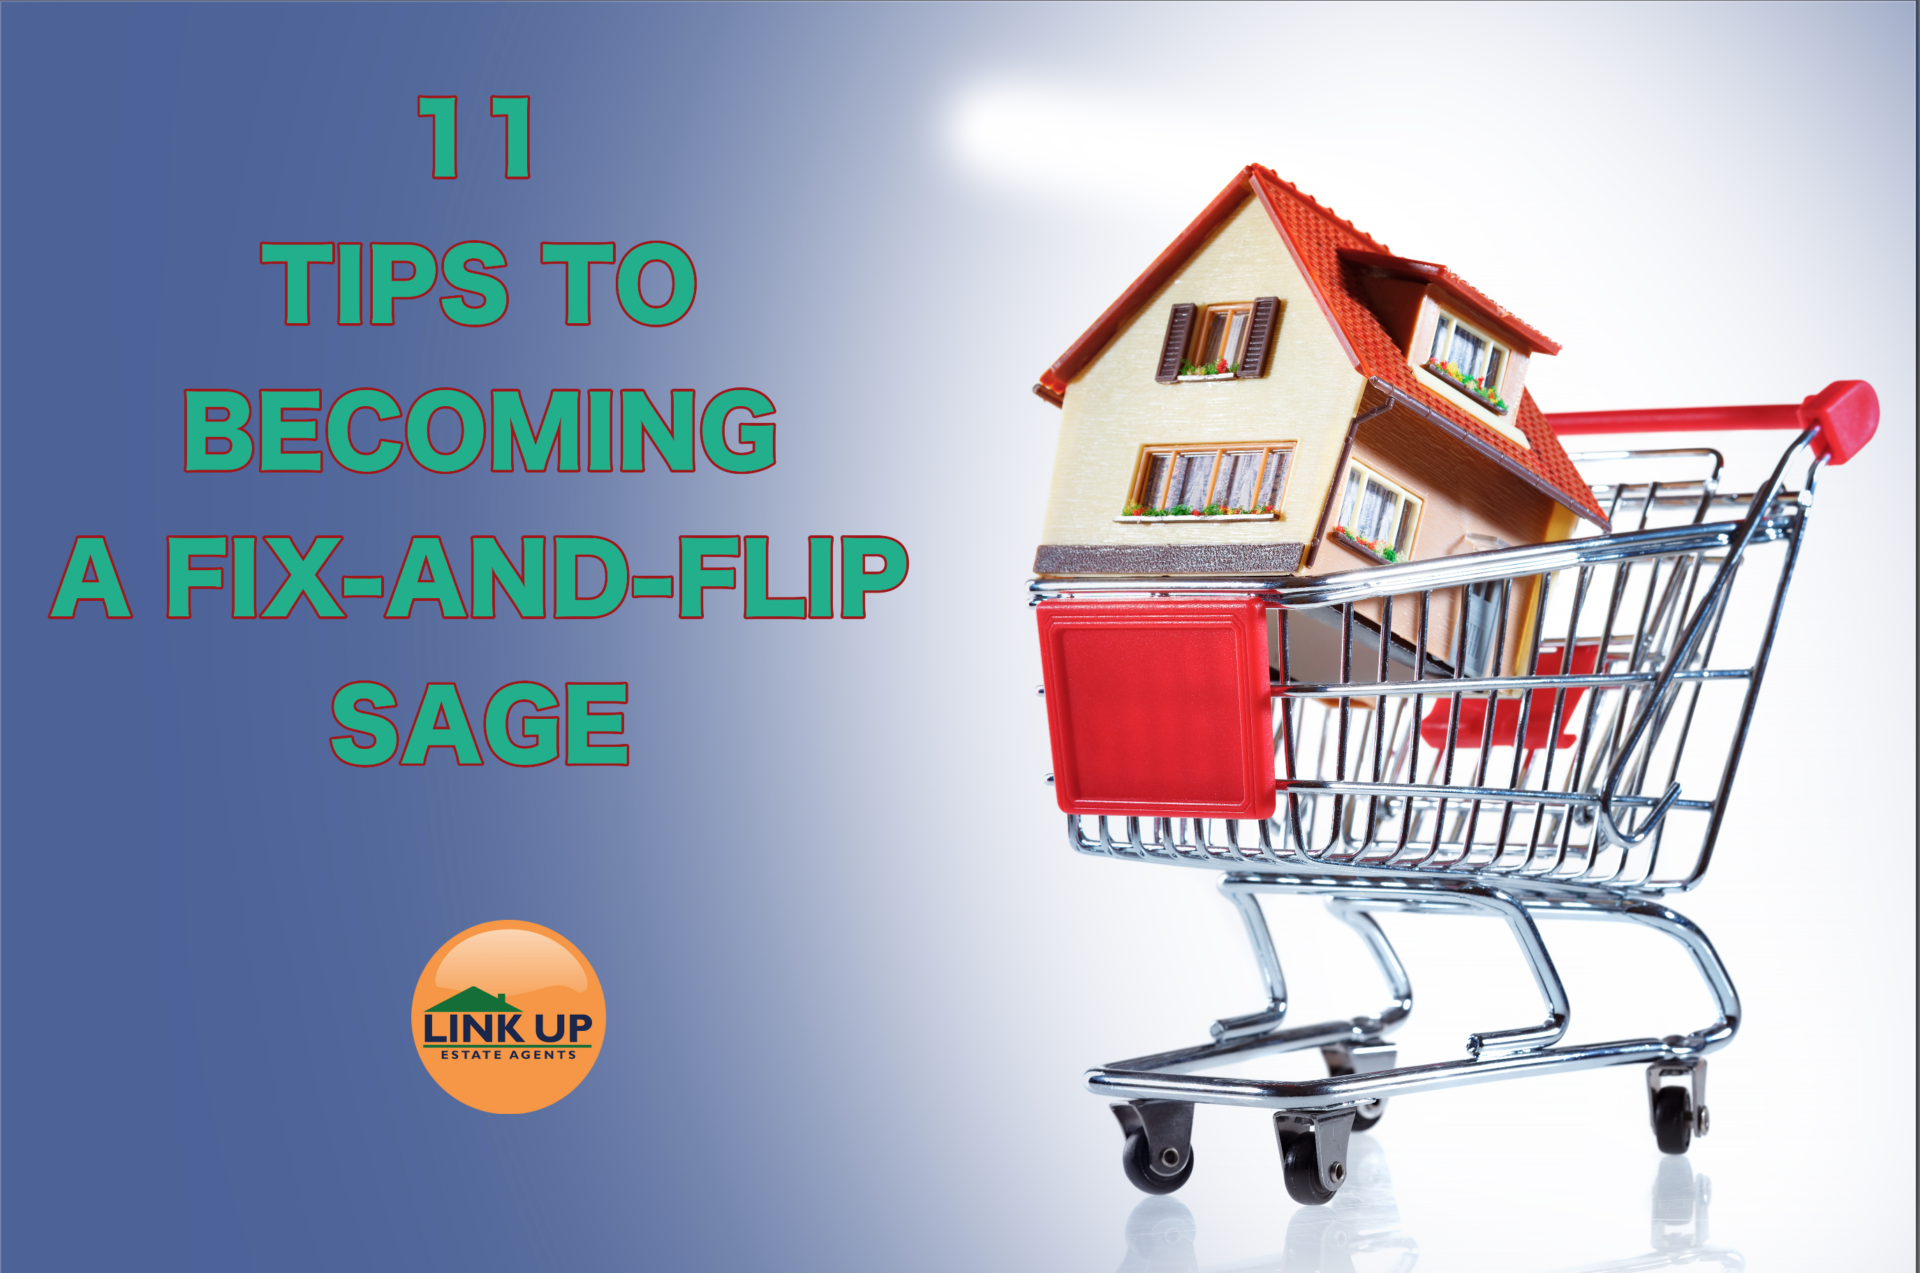 11 TIPS TO BECOMING A FIX-AND-FLIP SAGE